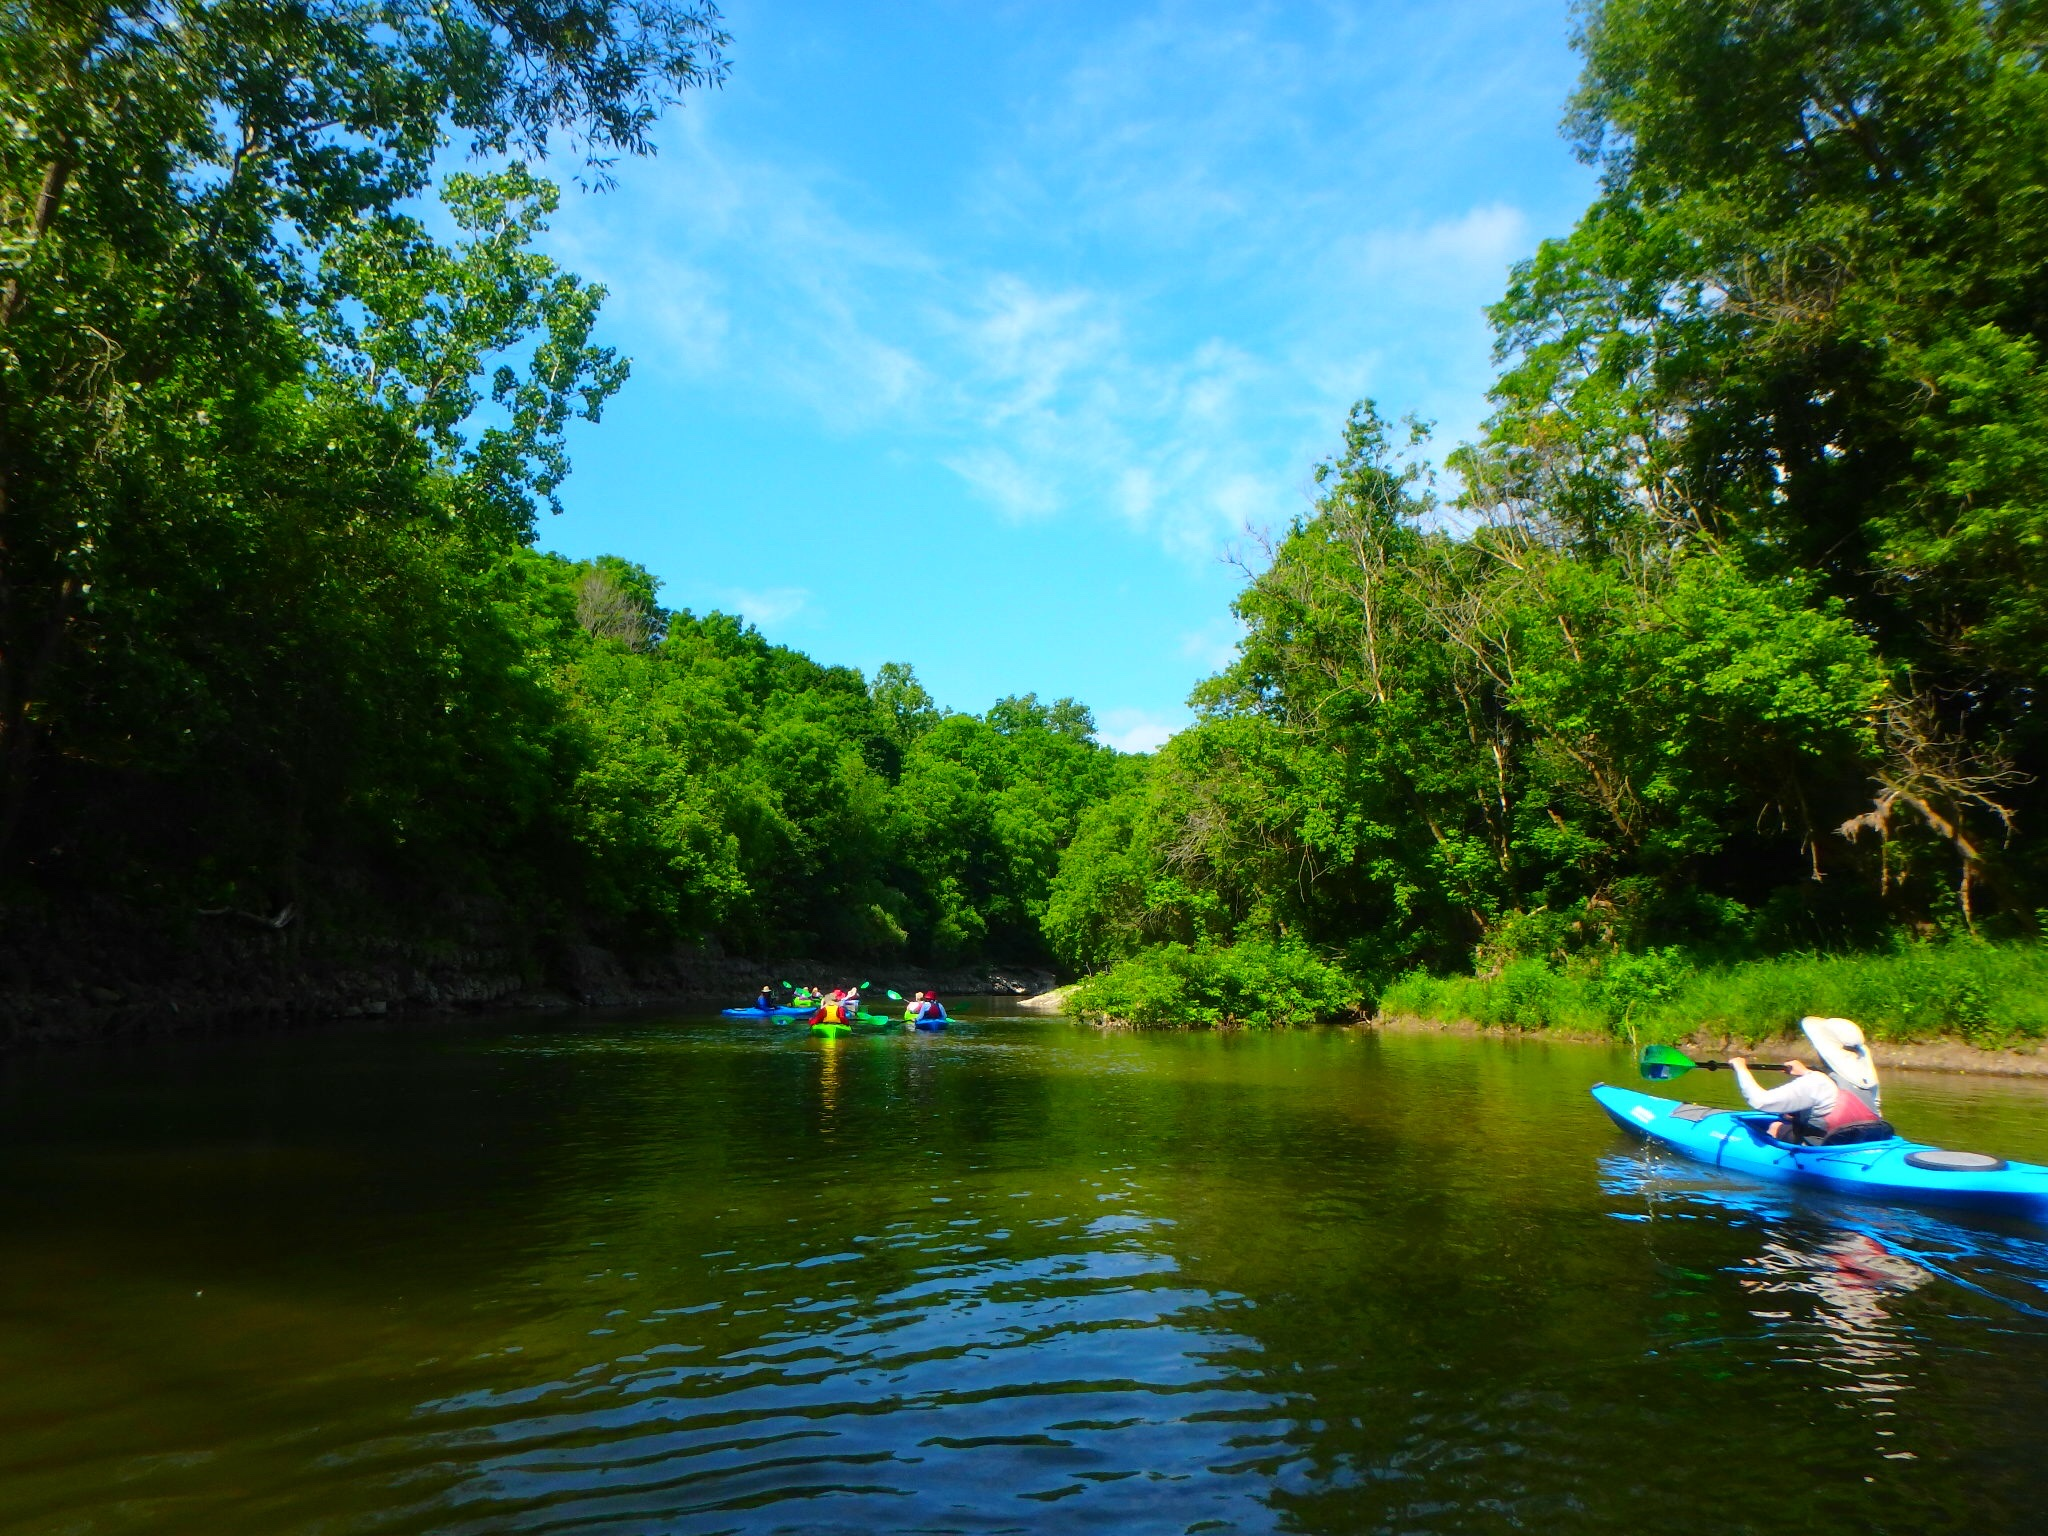 Kayaking Yoga Meditation - Solstice - Jun 21 2018-1